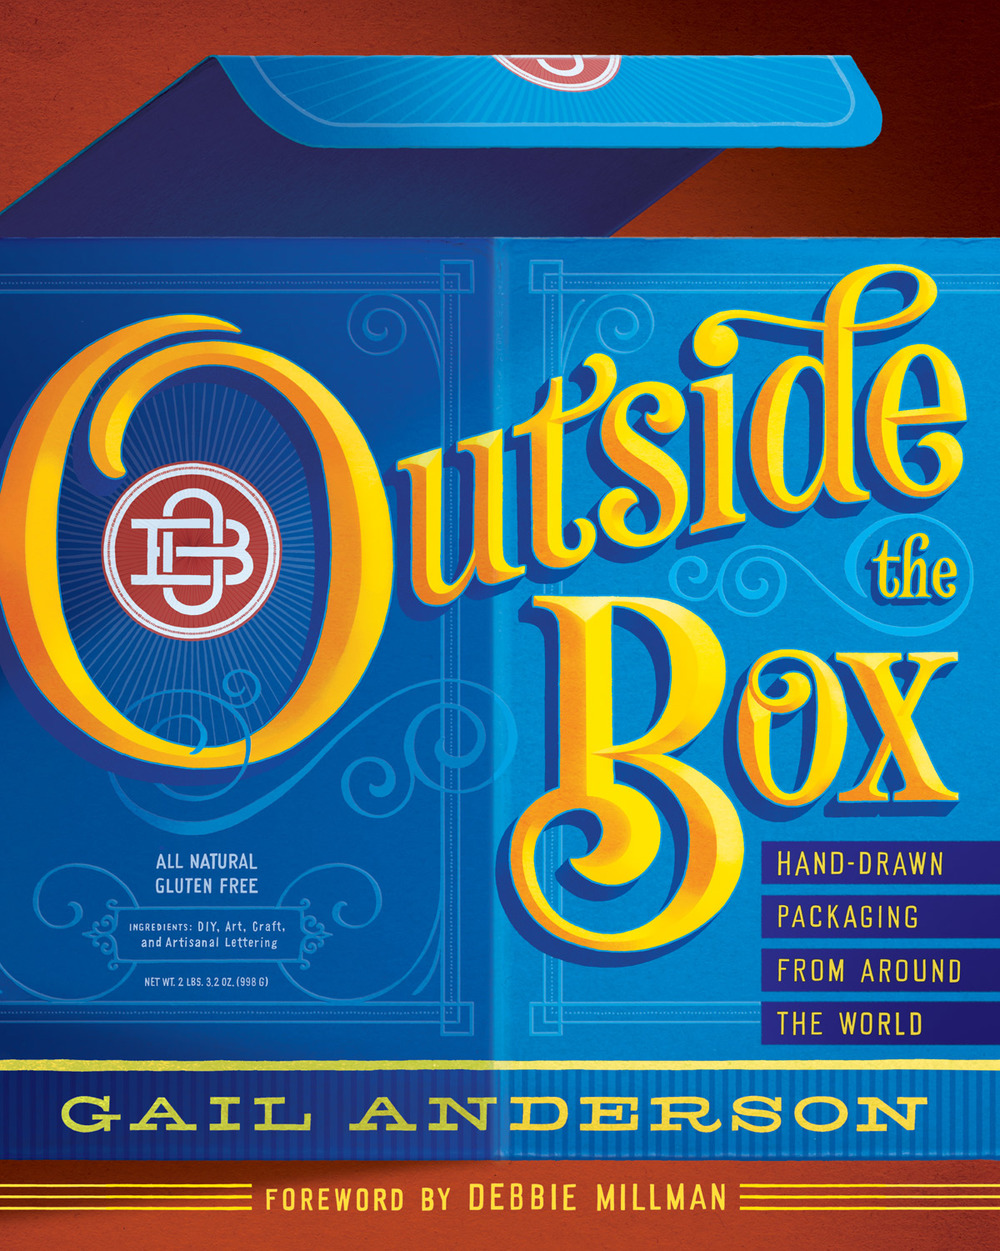 Outside of Outside the Box